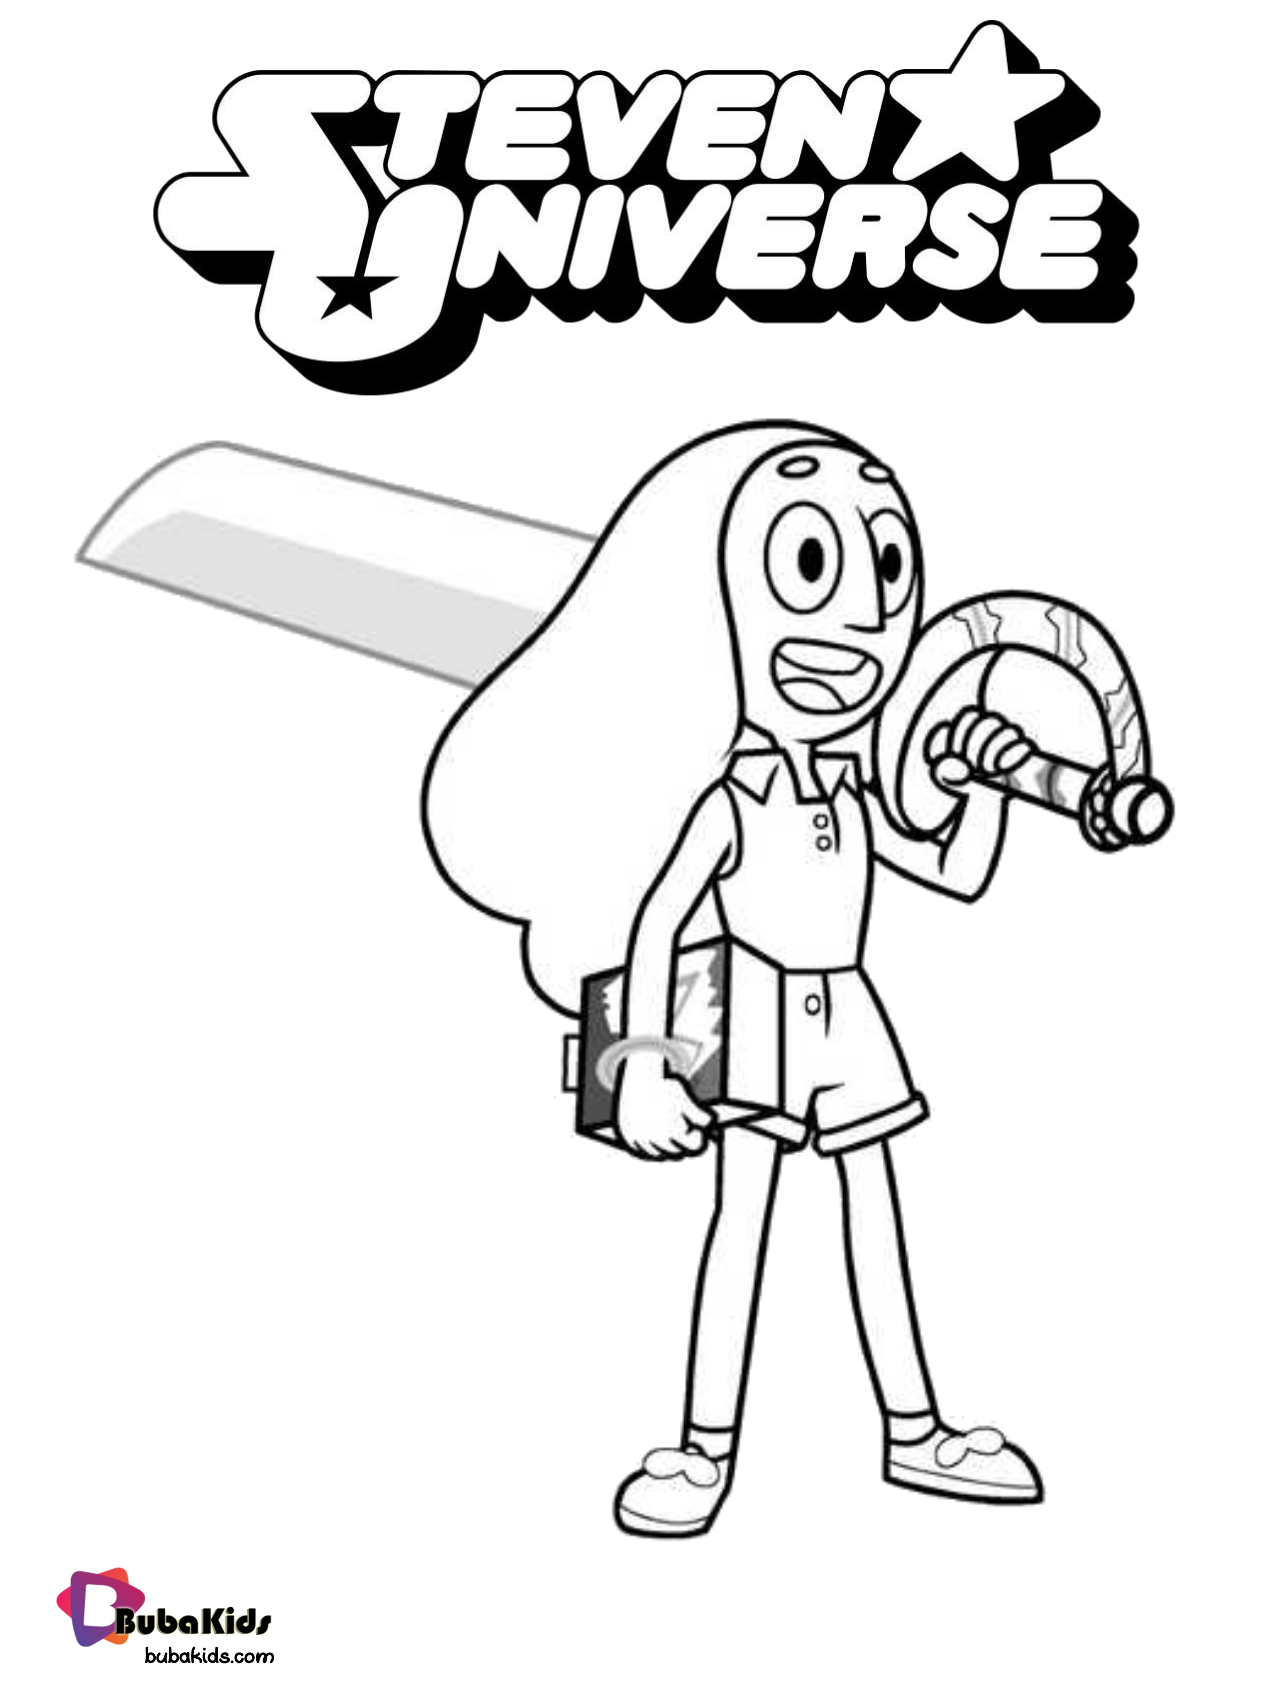 Connie Maheswara Steven Universe Coloring Page Collection Of Cartoon Coloring Pages For Teenage In 2020 Coloring Pages Cartoon Coloring Pages Printable Coloring Book